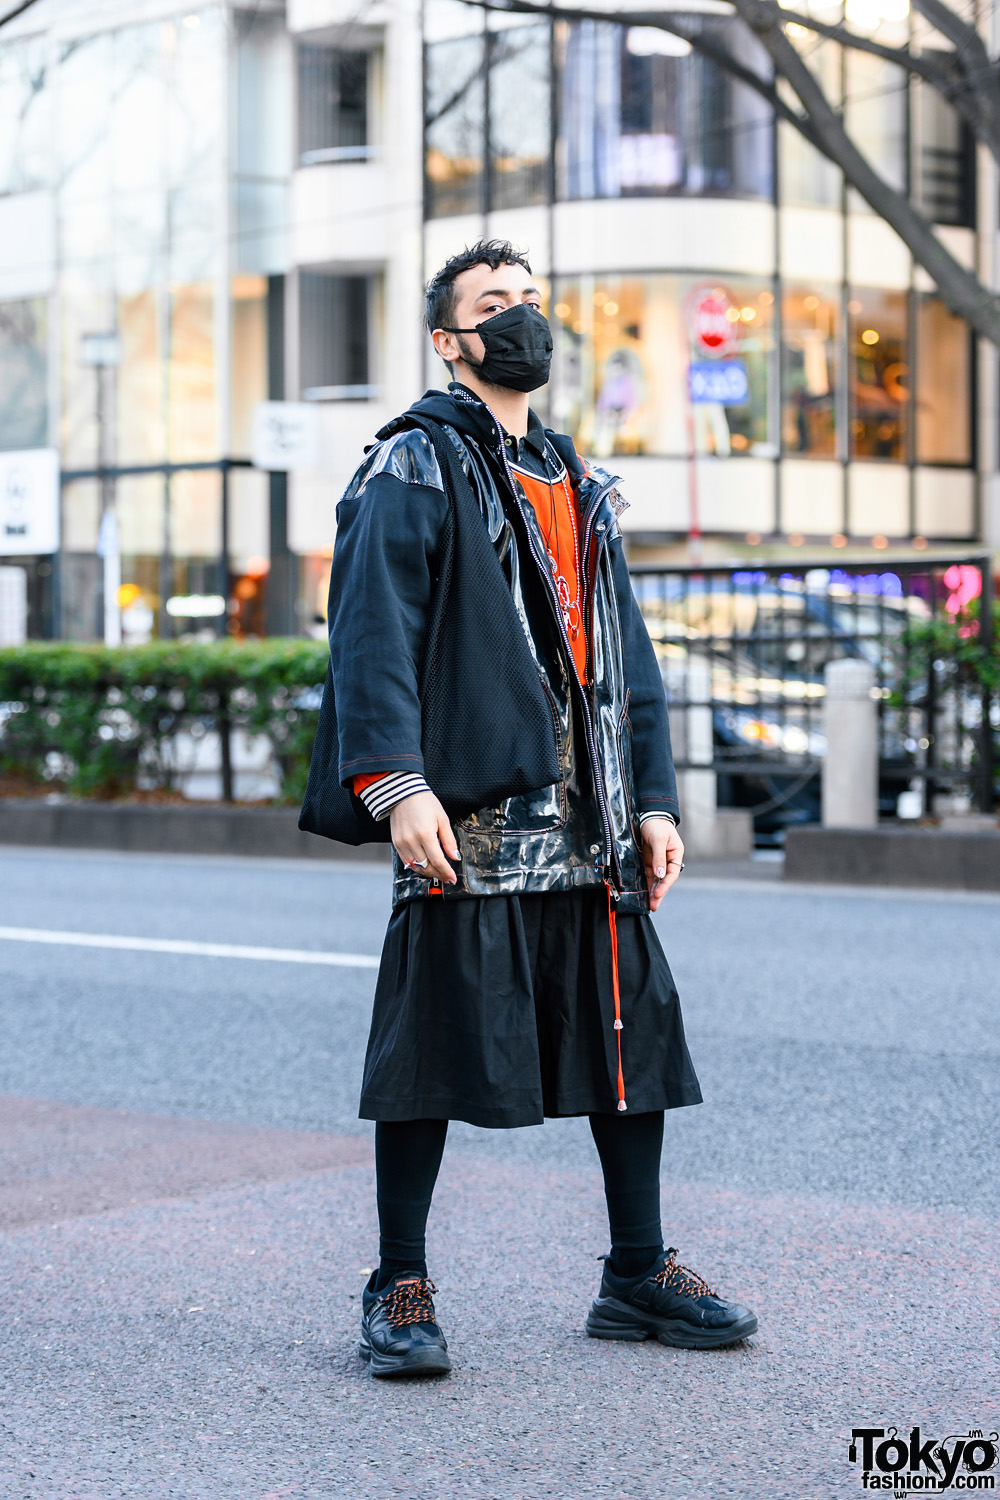 Accessory Designer in Tokyo w/ Face Mask, Patent Leather Jacket, Layered Tops, Wide Leg Culottes, Bento Bag & Chunky Sneakers